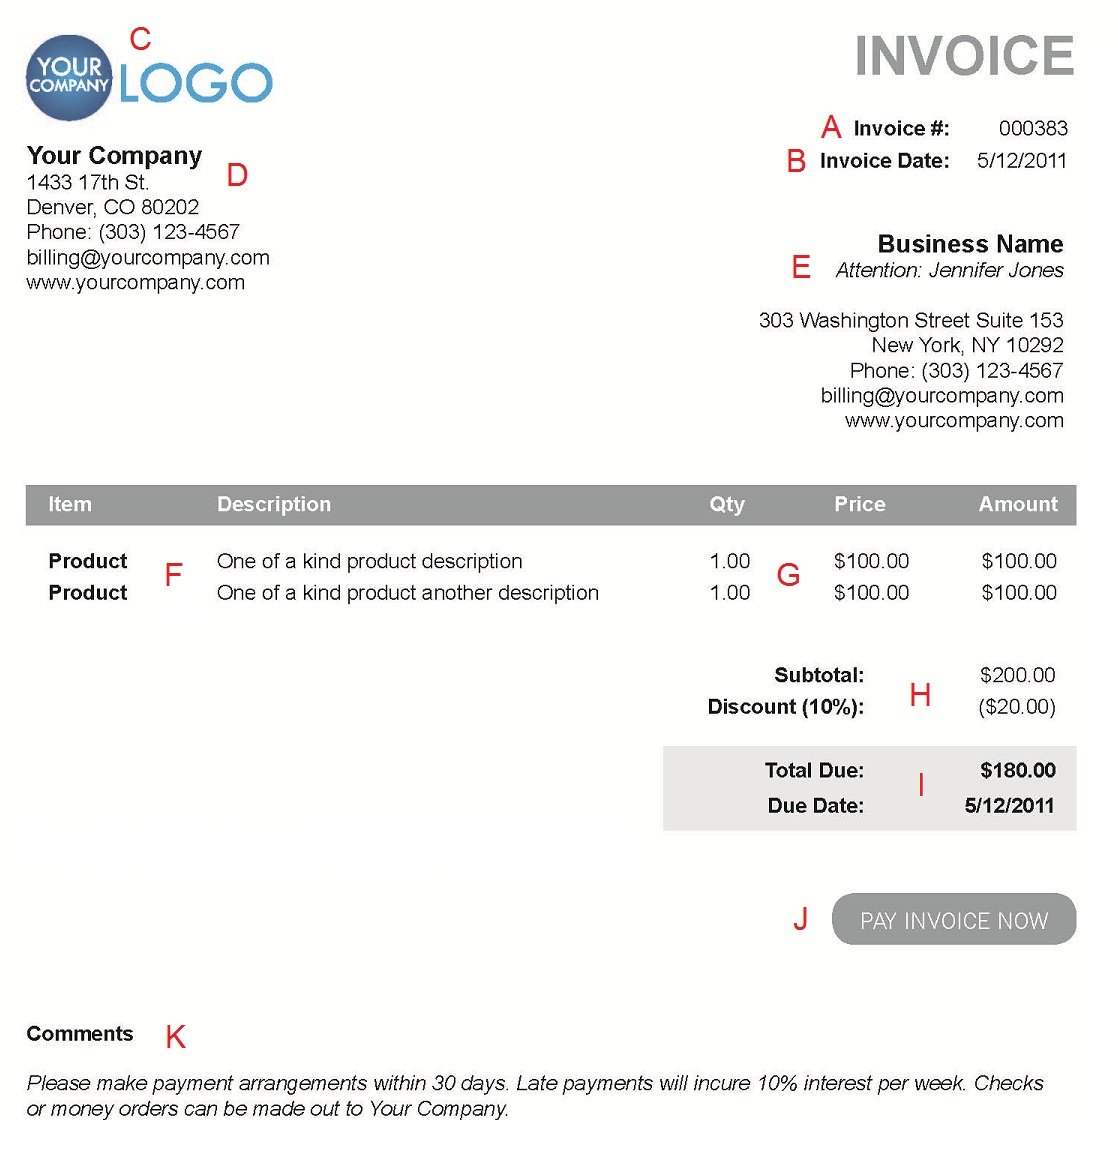 Reliefworkersus  Unique The  Different Sections Of An Electronic Payment Invoice With Excellent A  With Breathtaking Sample Invoice Templates Also Free Business Invoice In Addition Aynax Invoice Template And Copies Of Invoices As Well As Commercial Invoice Example Additionally A Purchase Invoice Is A Document That From Paysimplecom With Reliefworkersus  Excellent The  Different Sections Of An Electronic Payment Invoice With Breathtaking A  And Unique Sample Invoice Templates Also Free Business Invoice In Addition Aynax Invoice Template From Paysimplecom